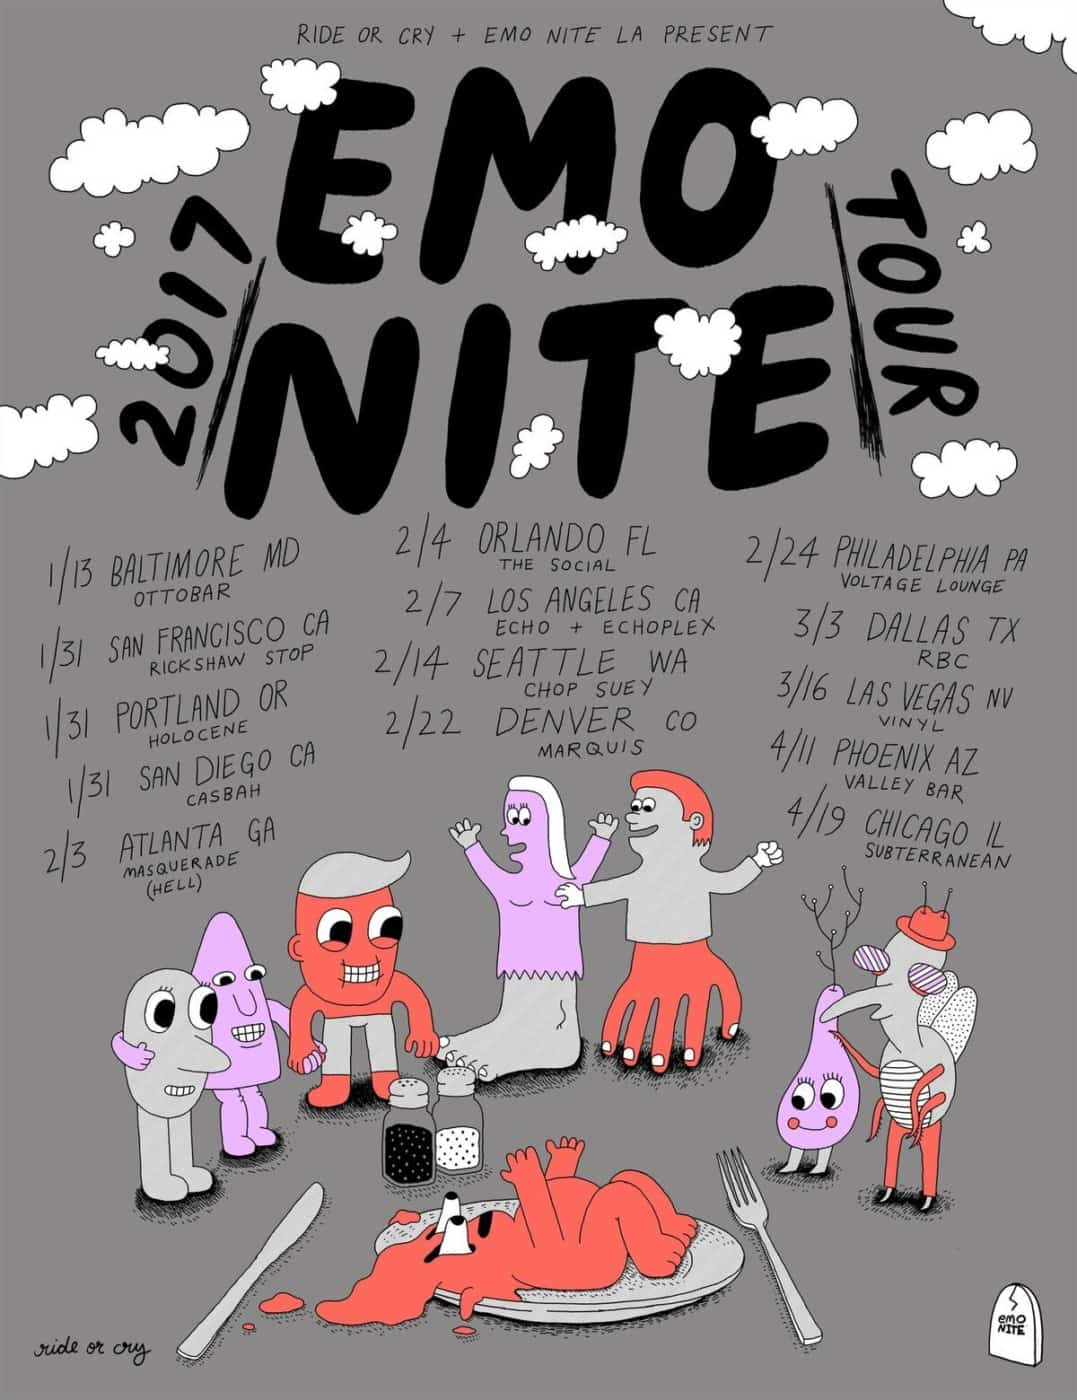 Emo Nite Tour--Coming to YOU!